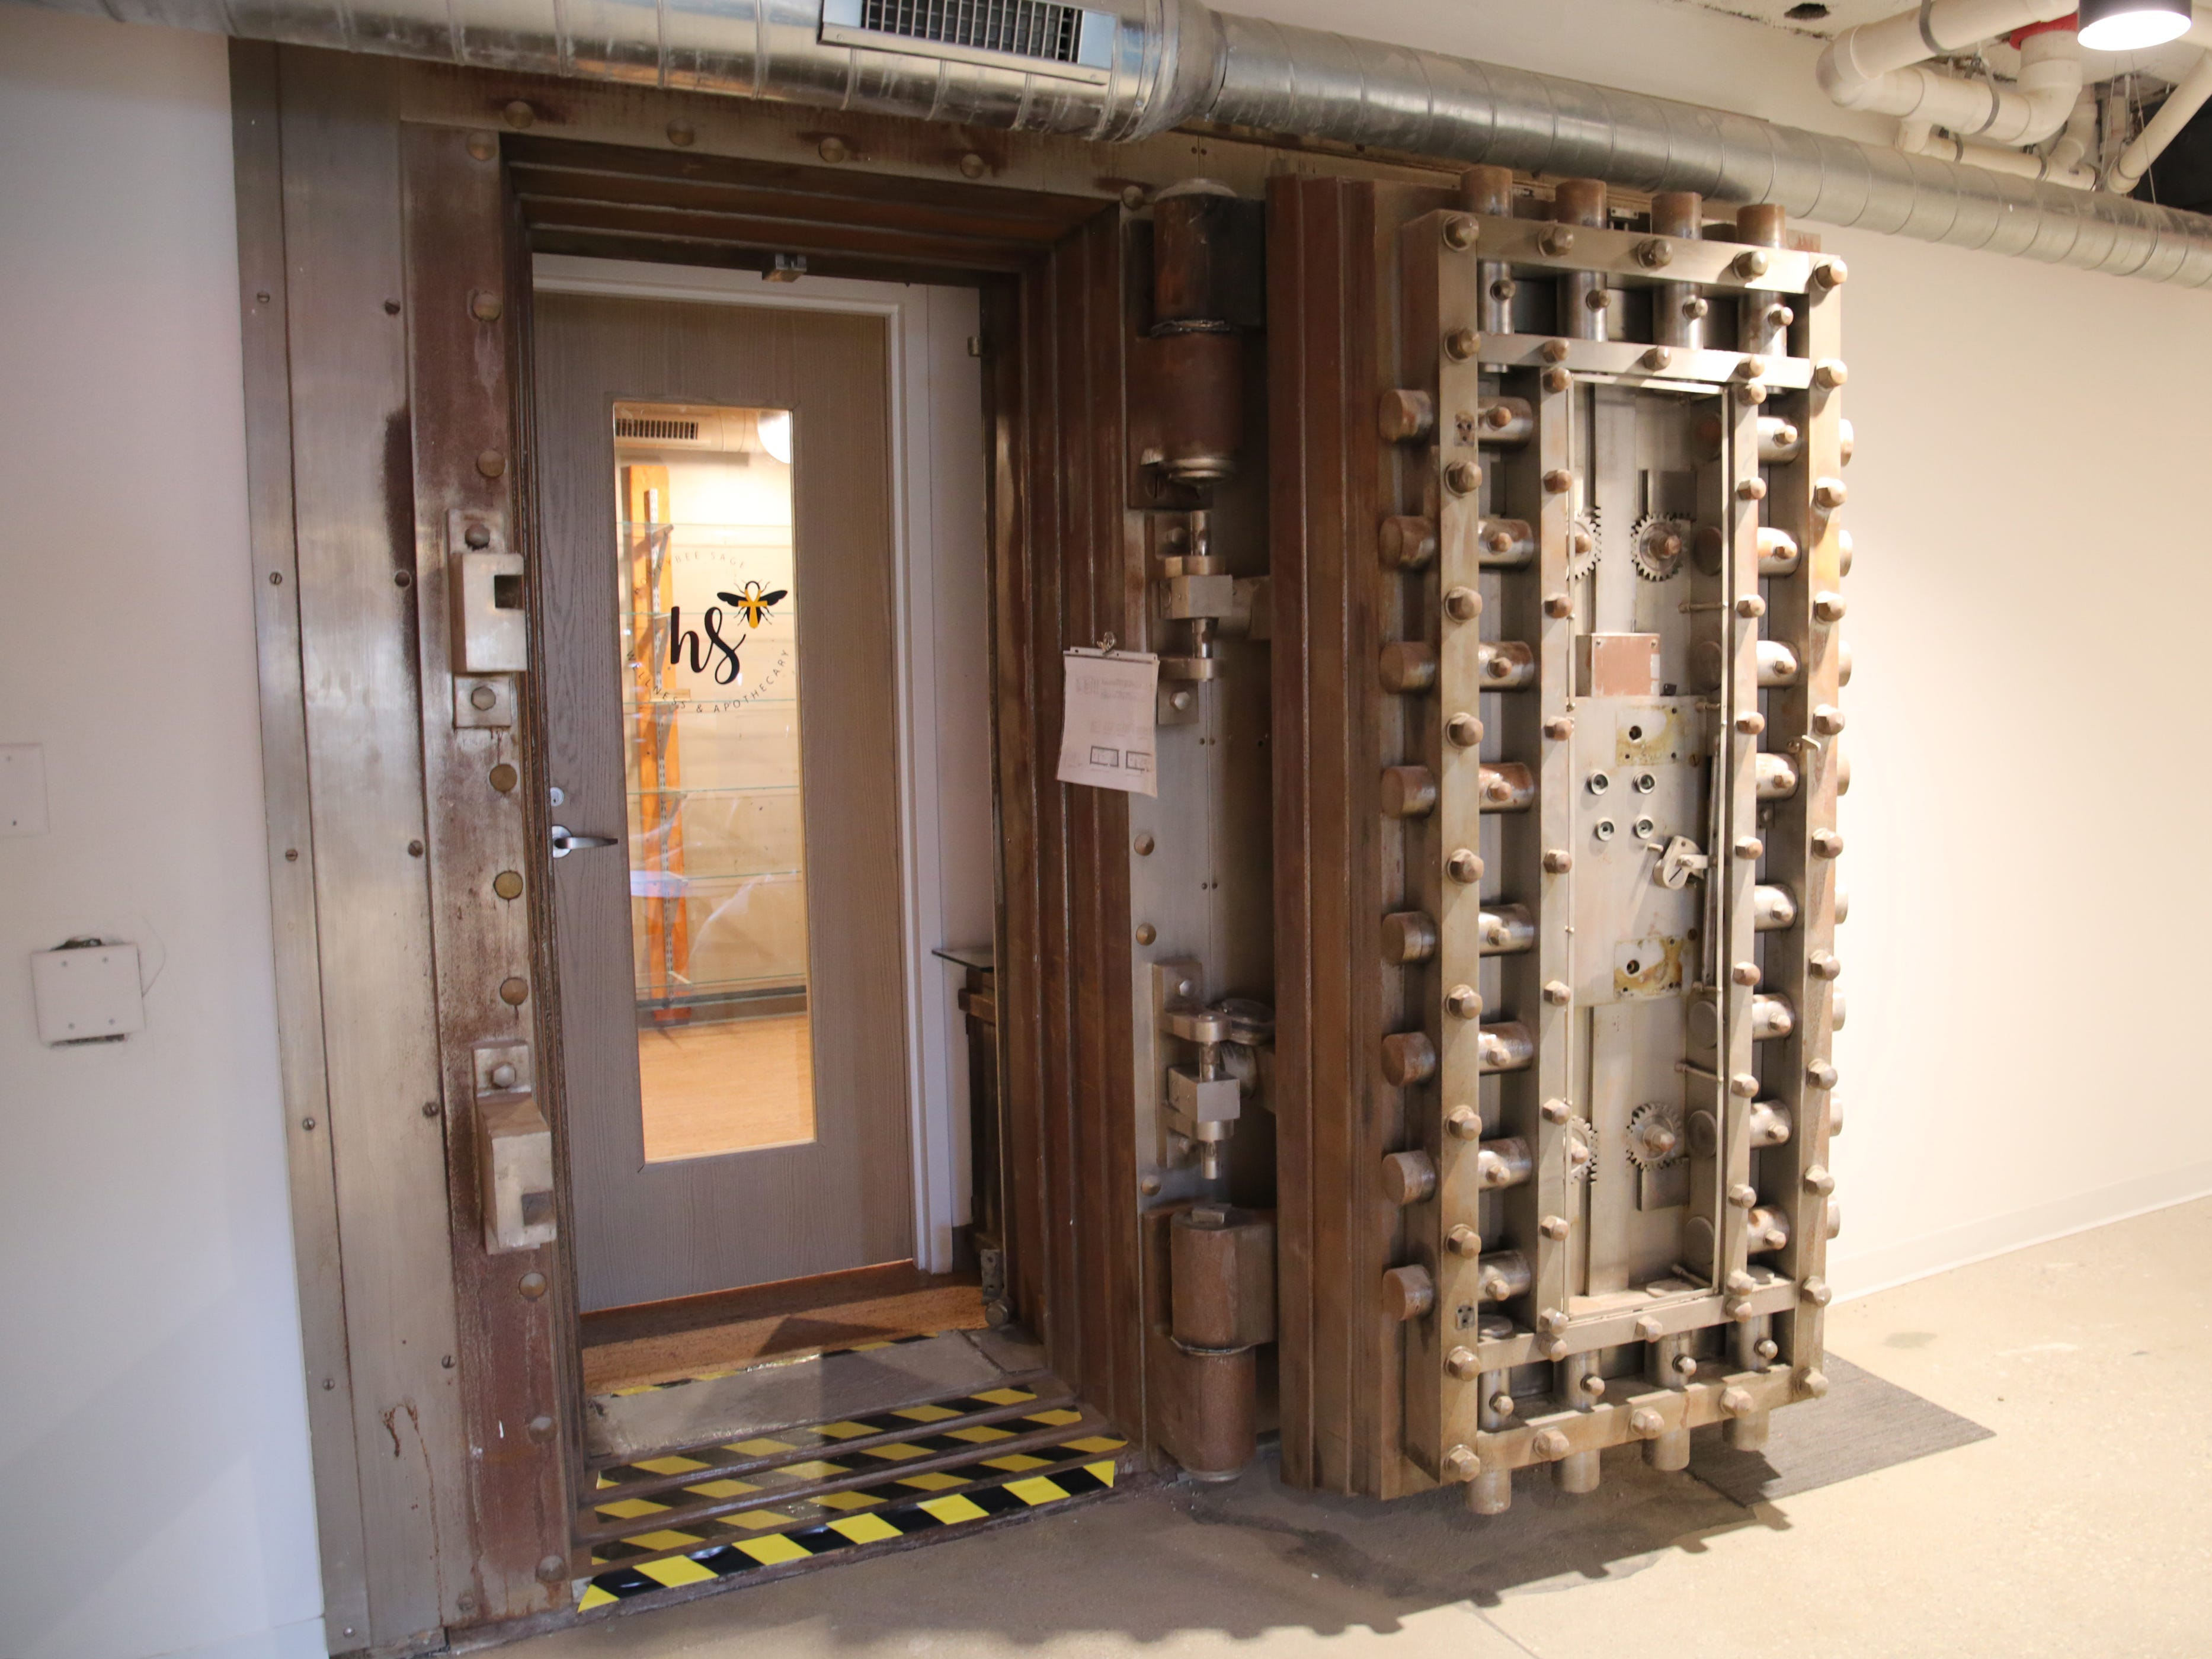 The old BMO Harris vault serves as an entrance to Honeybee and Sage Wellness.